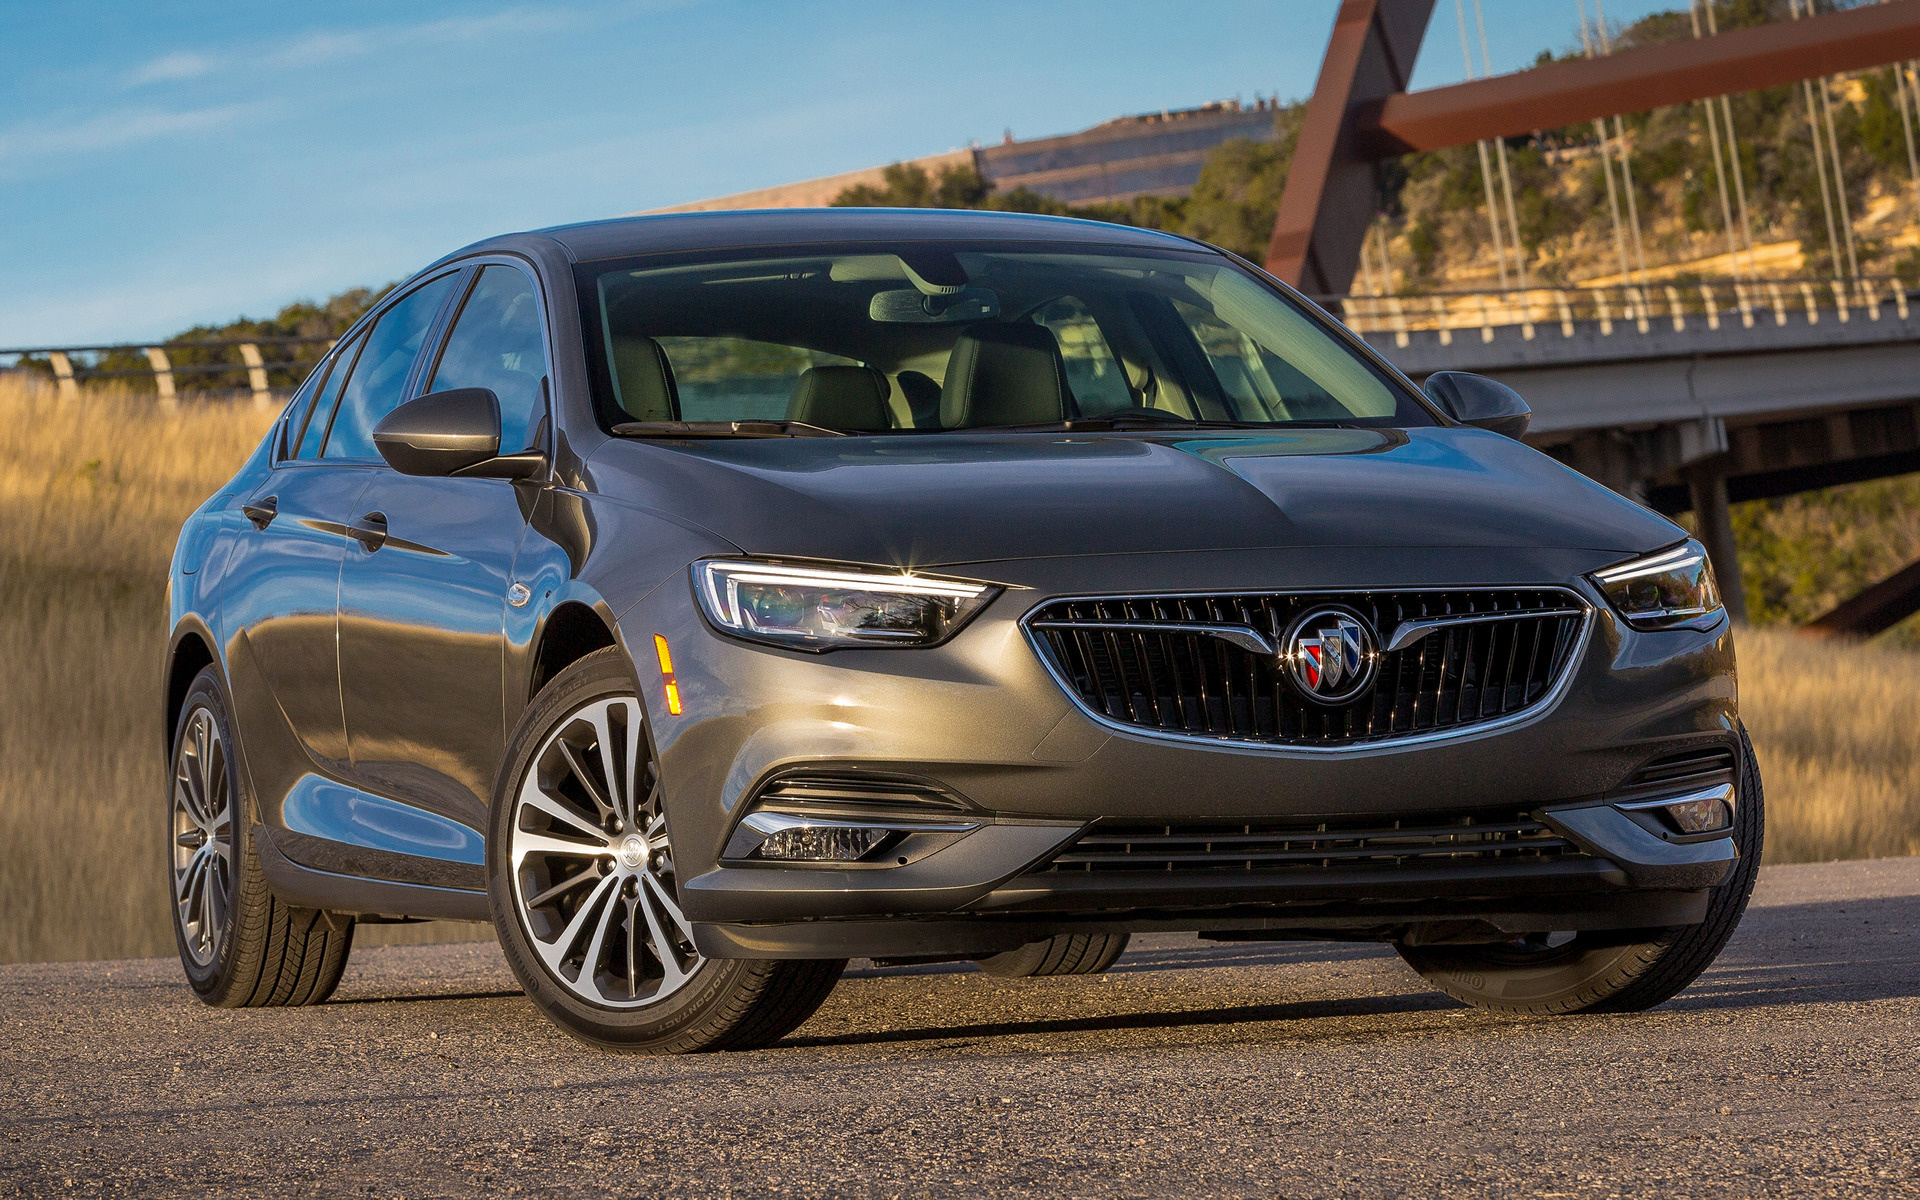 Buick Regal Sportback (2018) Wallpapers and HD Images ...